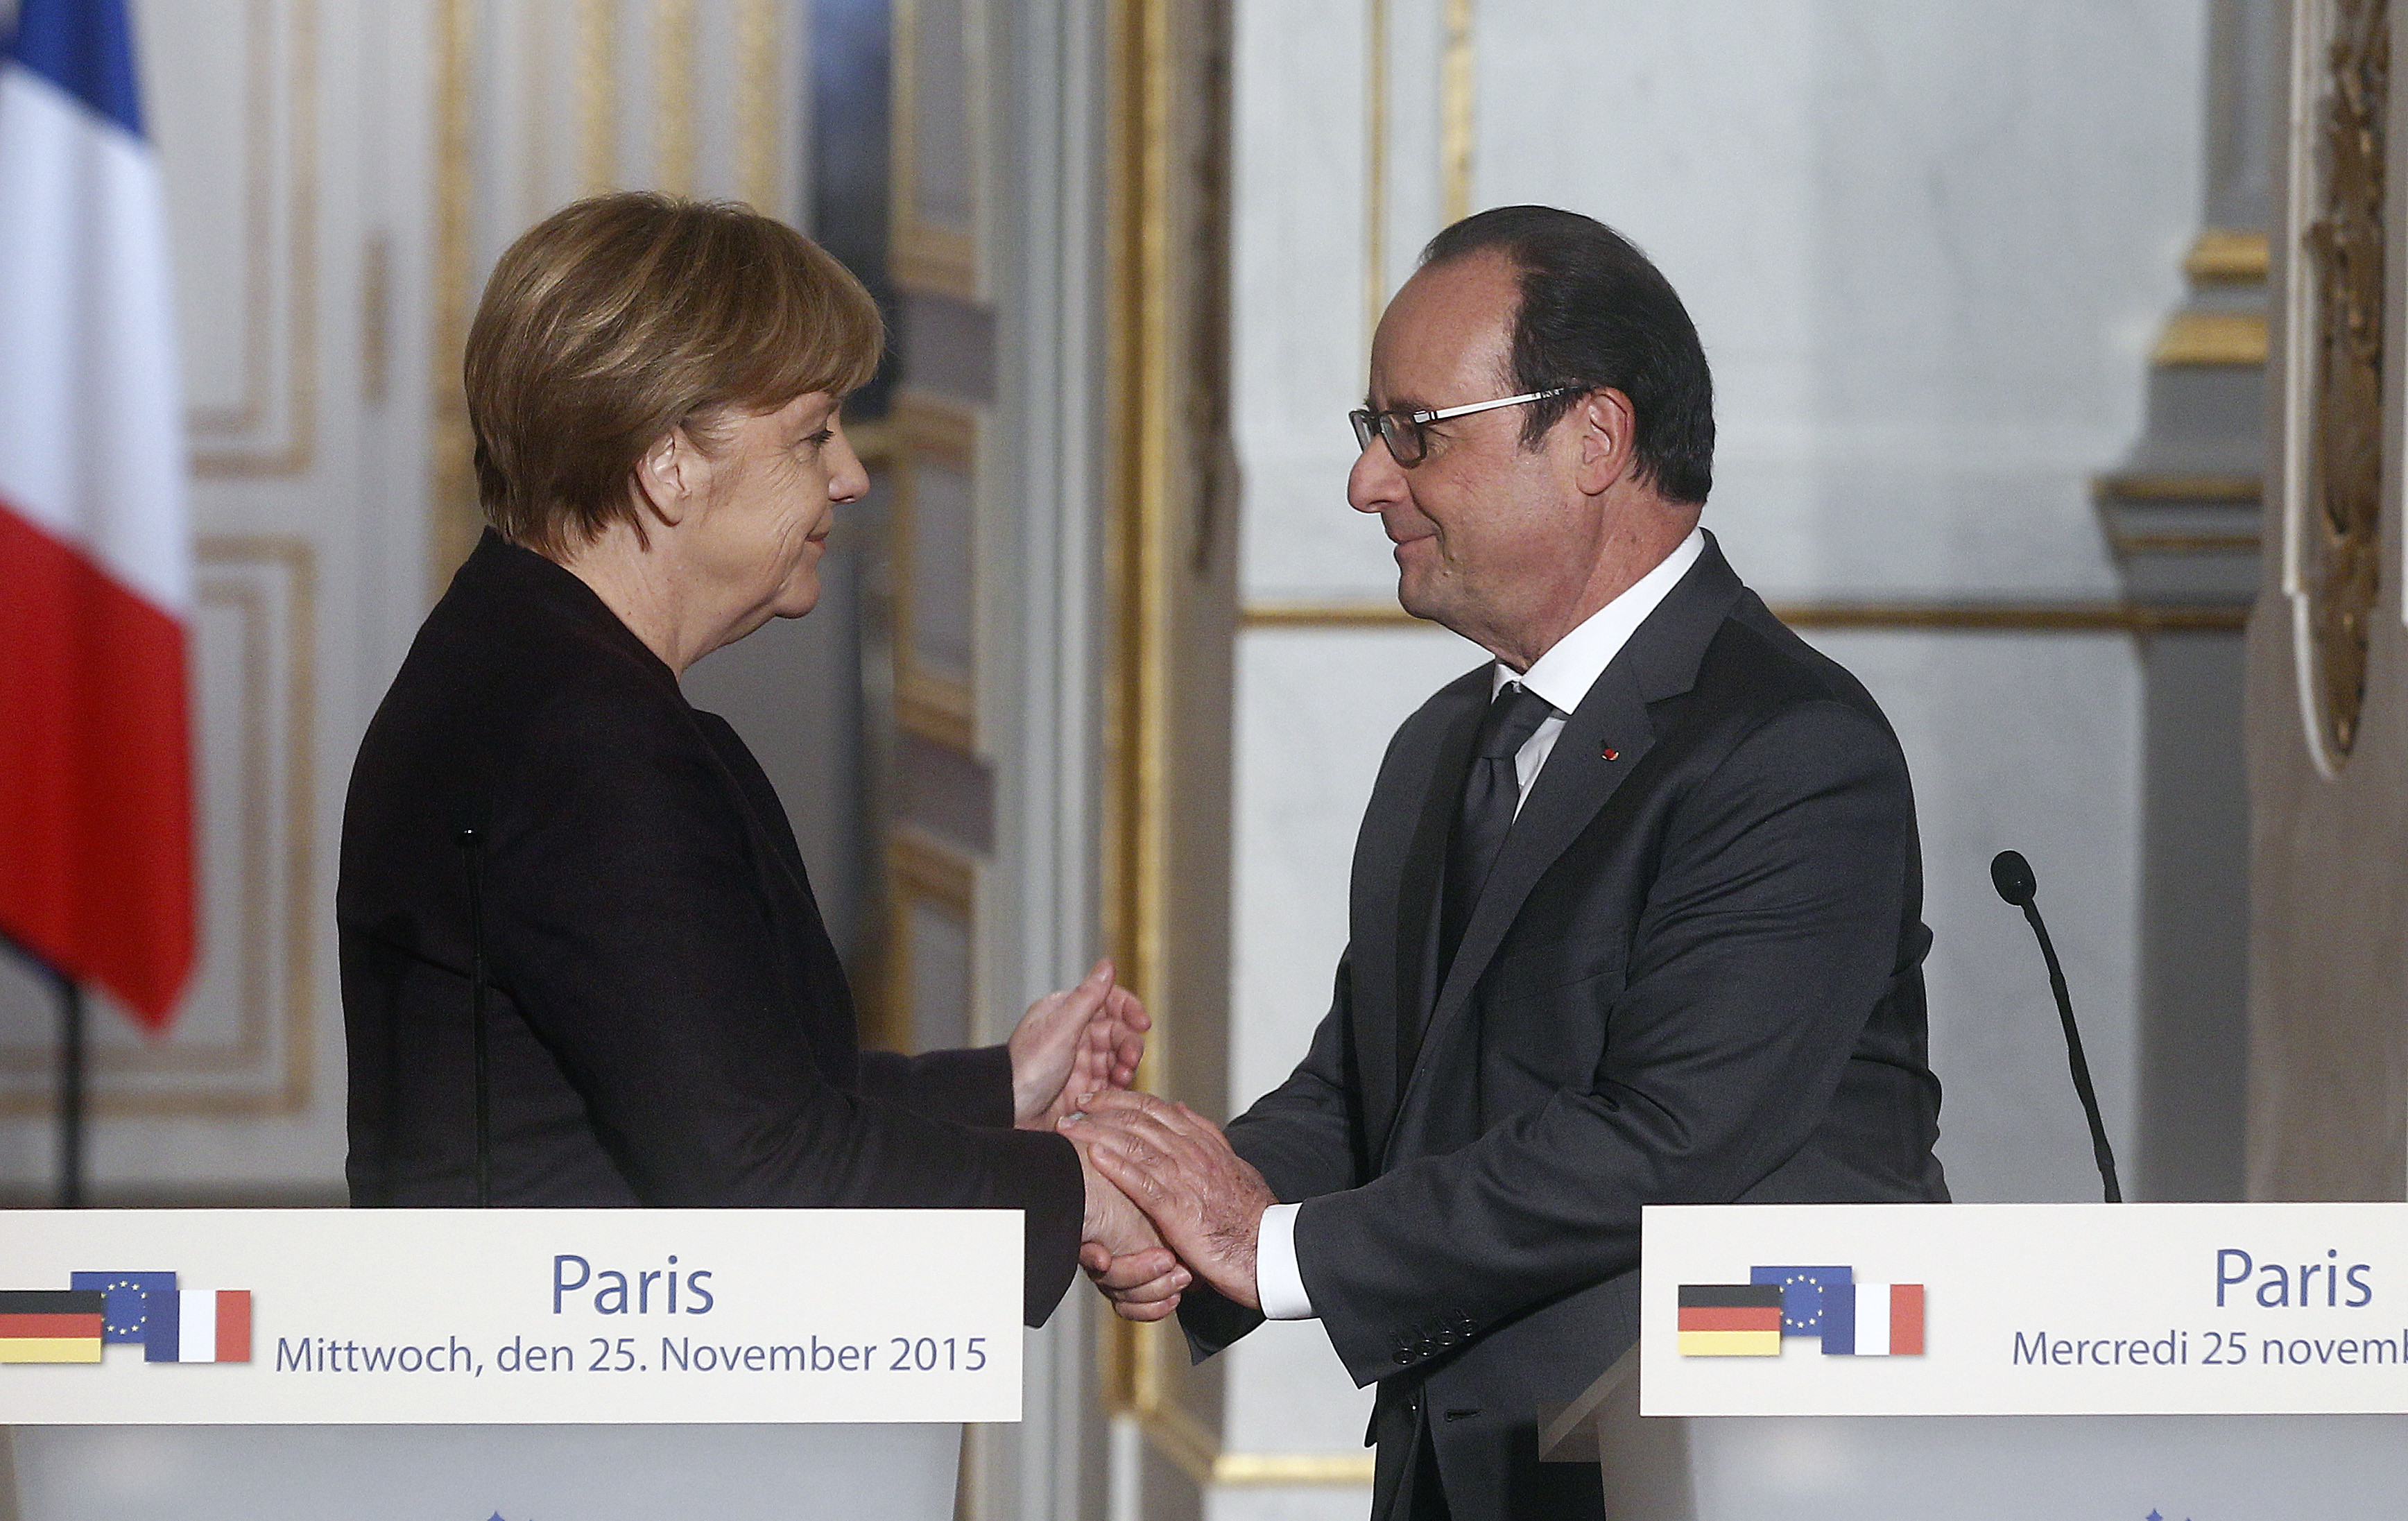 PARIS, FRANCE - NOVEMBER 25:  French President Francois Hollande shakes hand with German Chancellor Angela Merkel after a press conference at the Elysee Presidential Palace on November 25, 2015 in Paris, France. Mr Hollande is seeking to establish a 'grand and single coalition' to fight the Islamic State group, also known as ISIS.  (Photo by Thierry Chesnot/Getty Images)